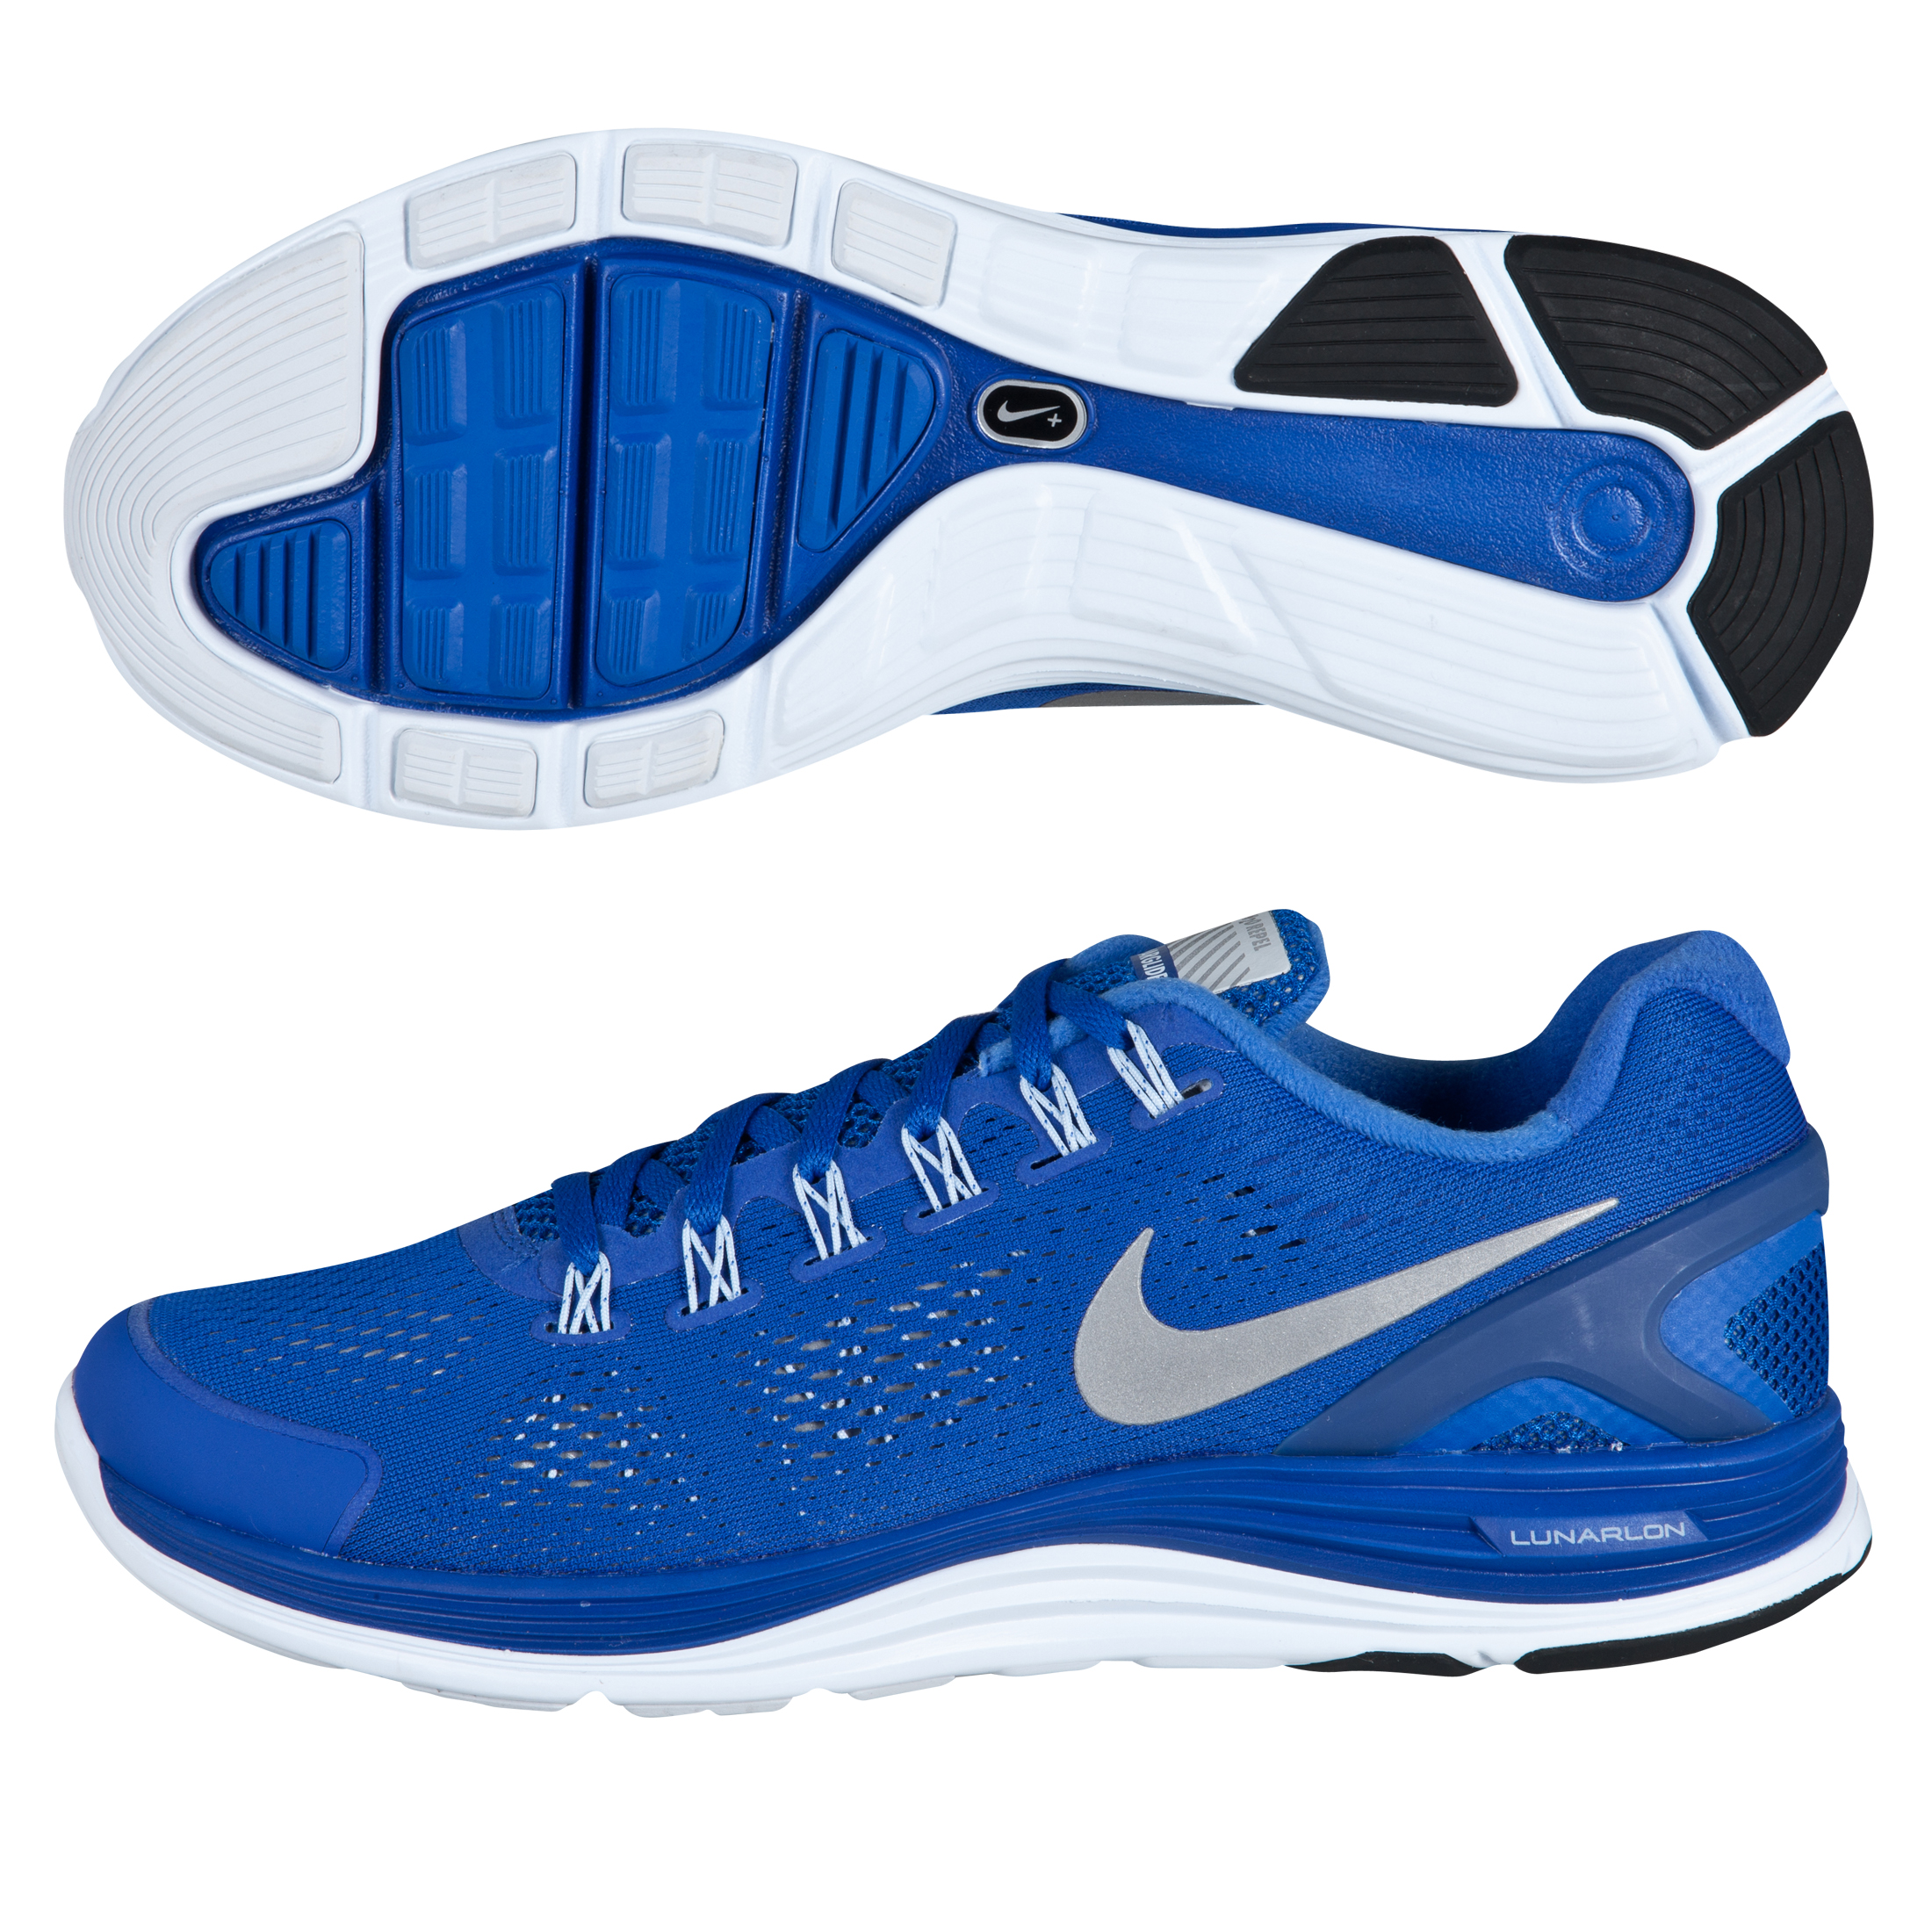 Nike Lunarglide+ 4 Shield Trainers - Game Royal/Metallic Silver